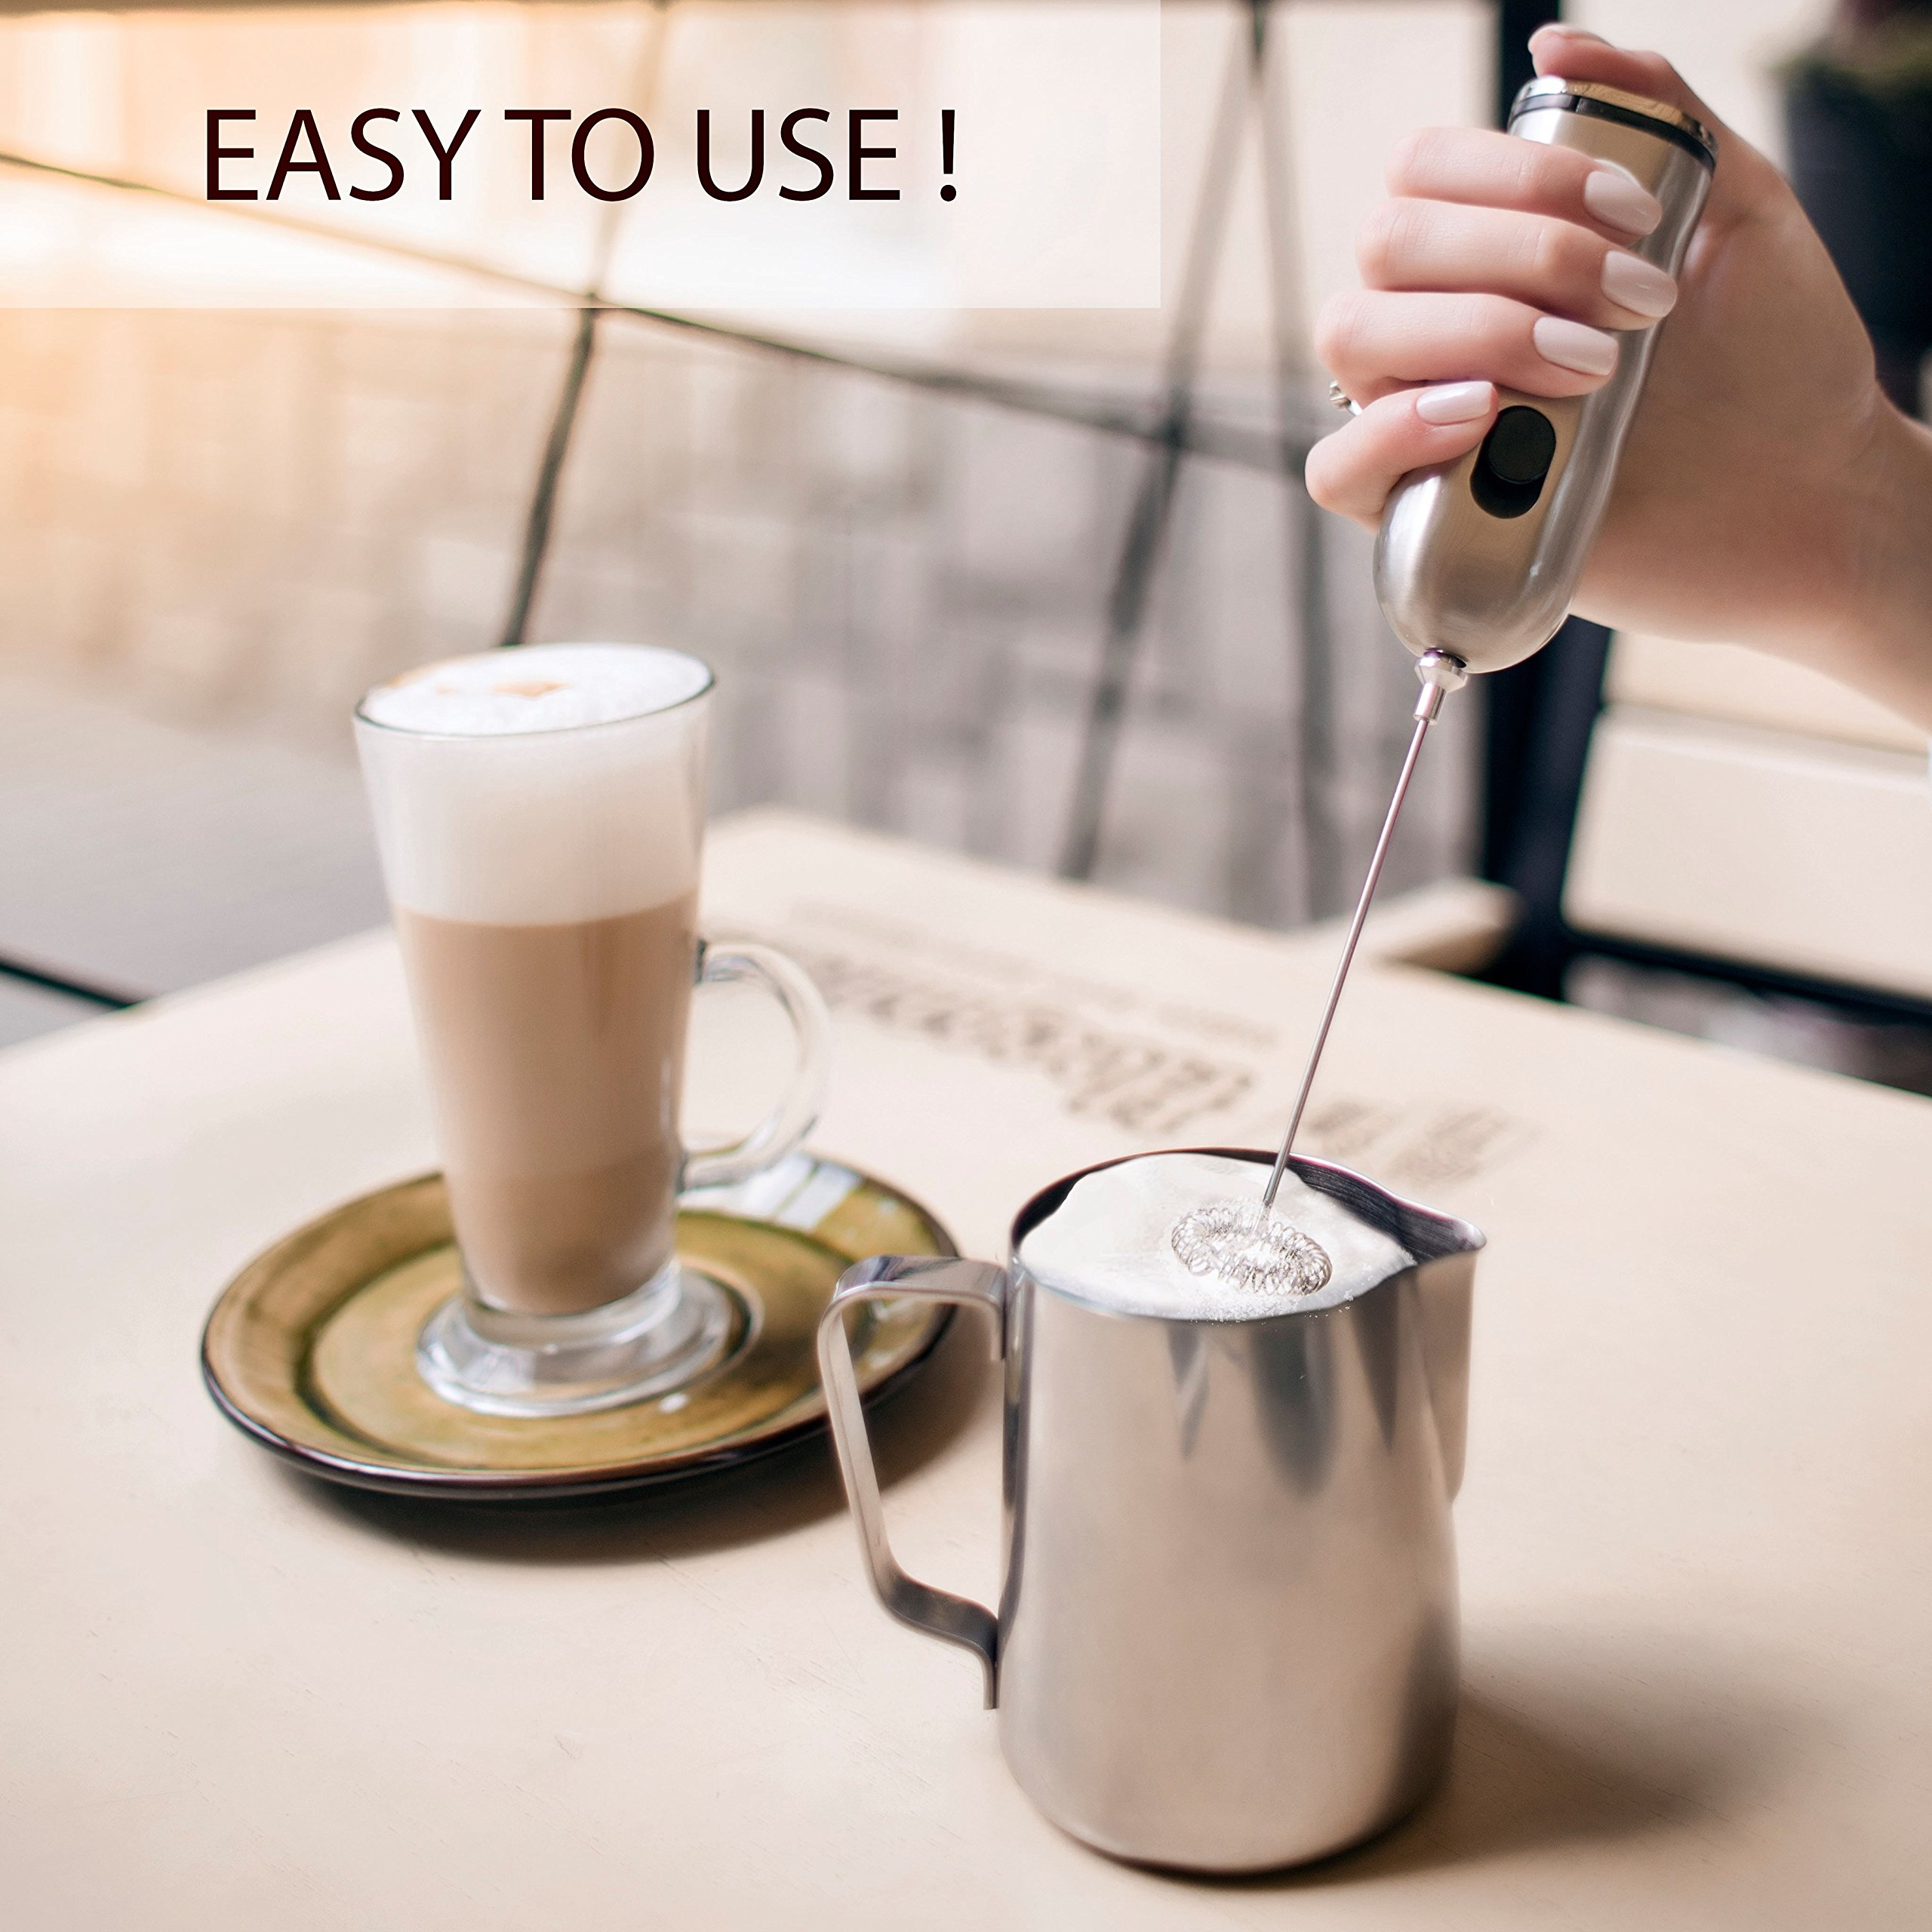 HBT Milk Frother Mixer Handheld Espresso Stirrers - Frothing Wand Battery Operated Electric Foam Maker for Coffee|Latte|Cappuccino|Hot Chocolate - Home Gifts Stainless Steel with Free Spoon|Ebook by HBT (Image #2)